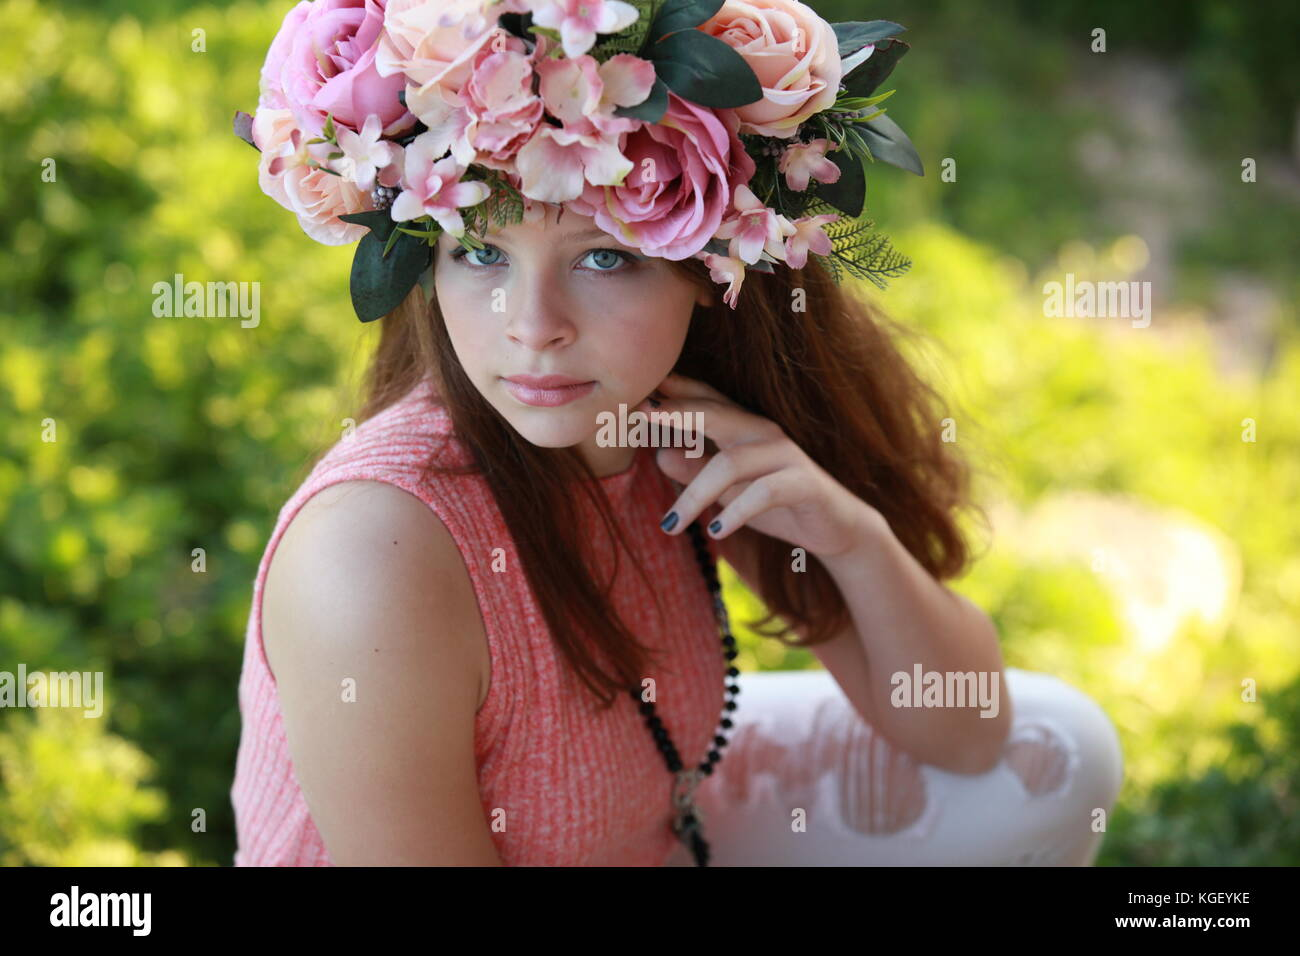 A Beautiful Young Woman Wearing A Colorful Flower Crown And Stock